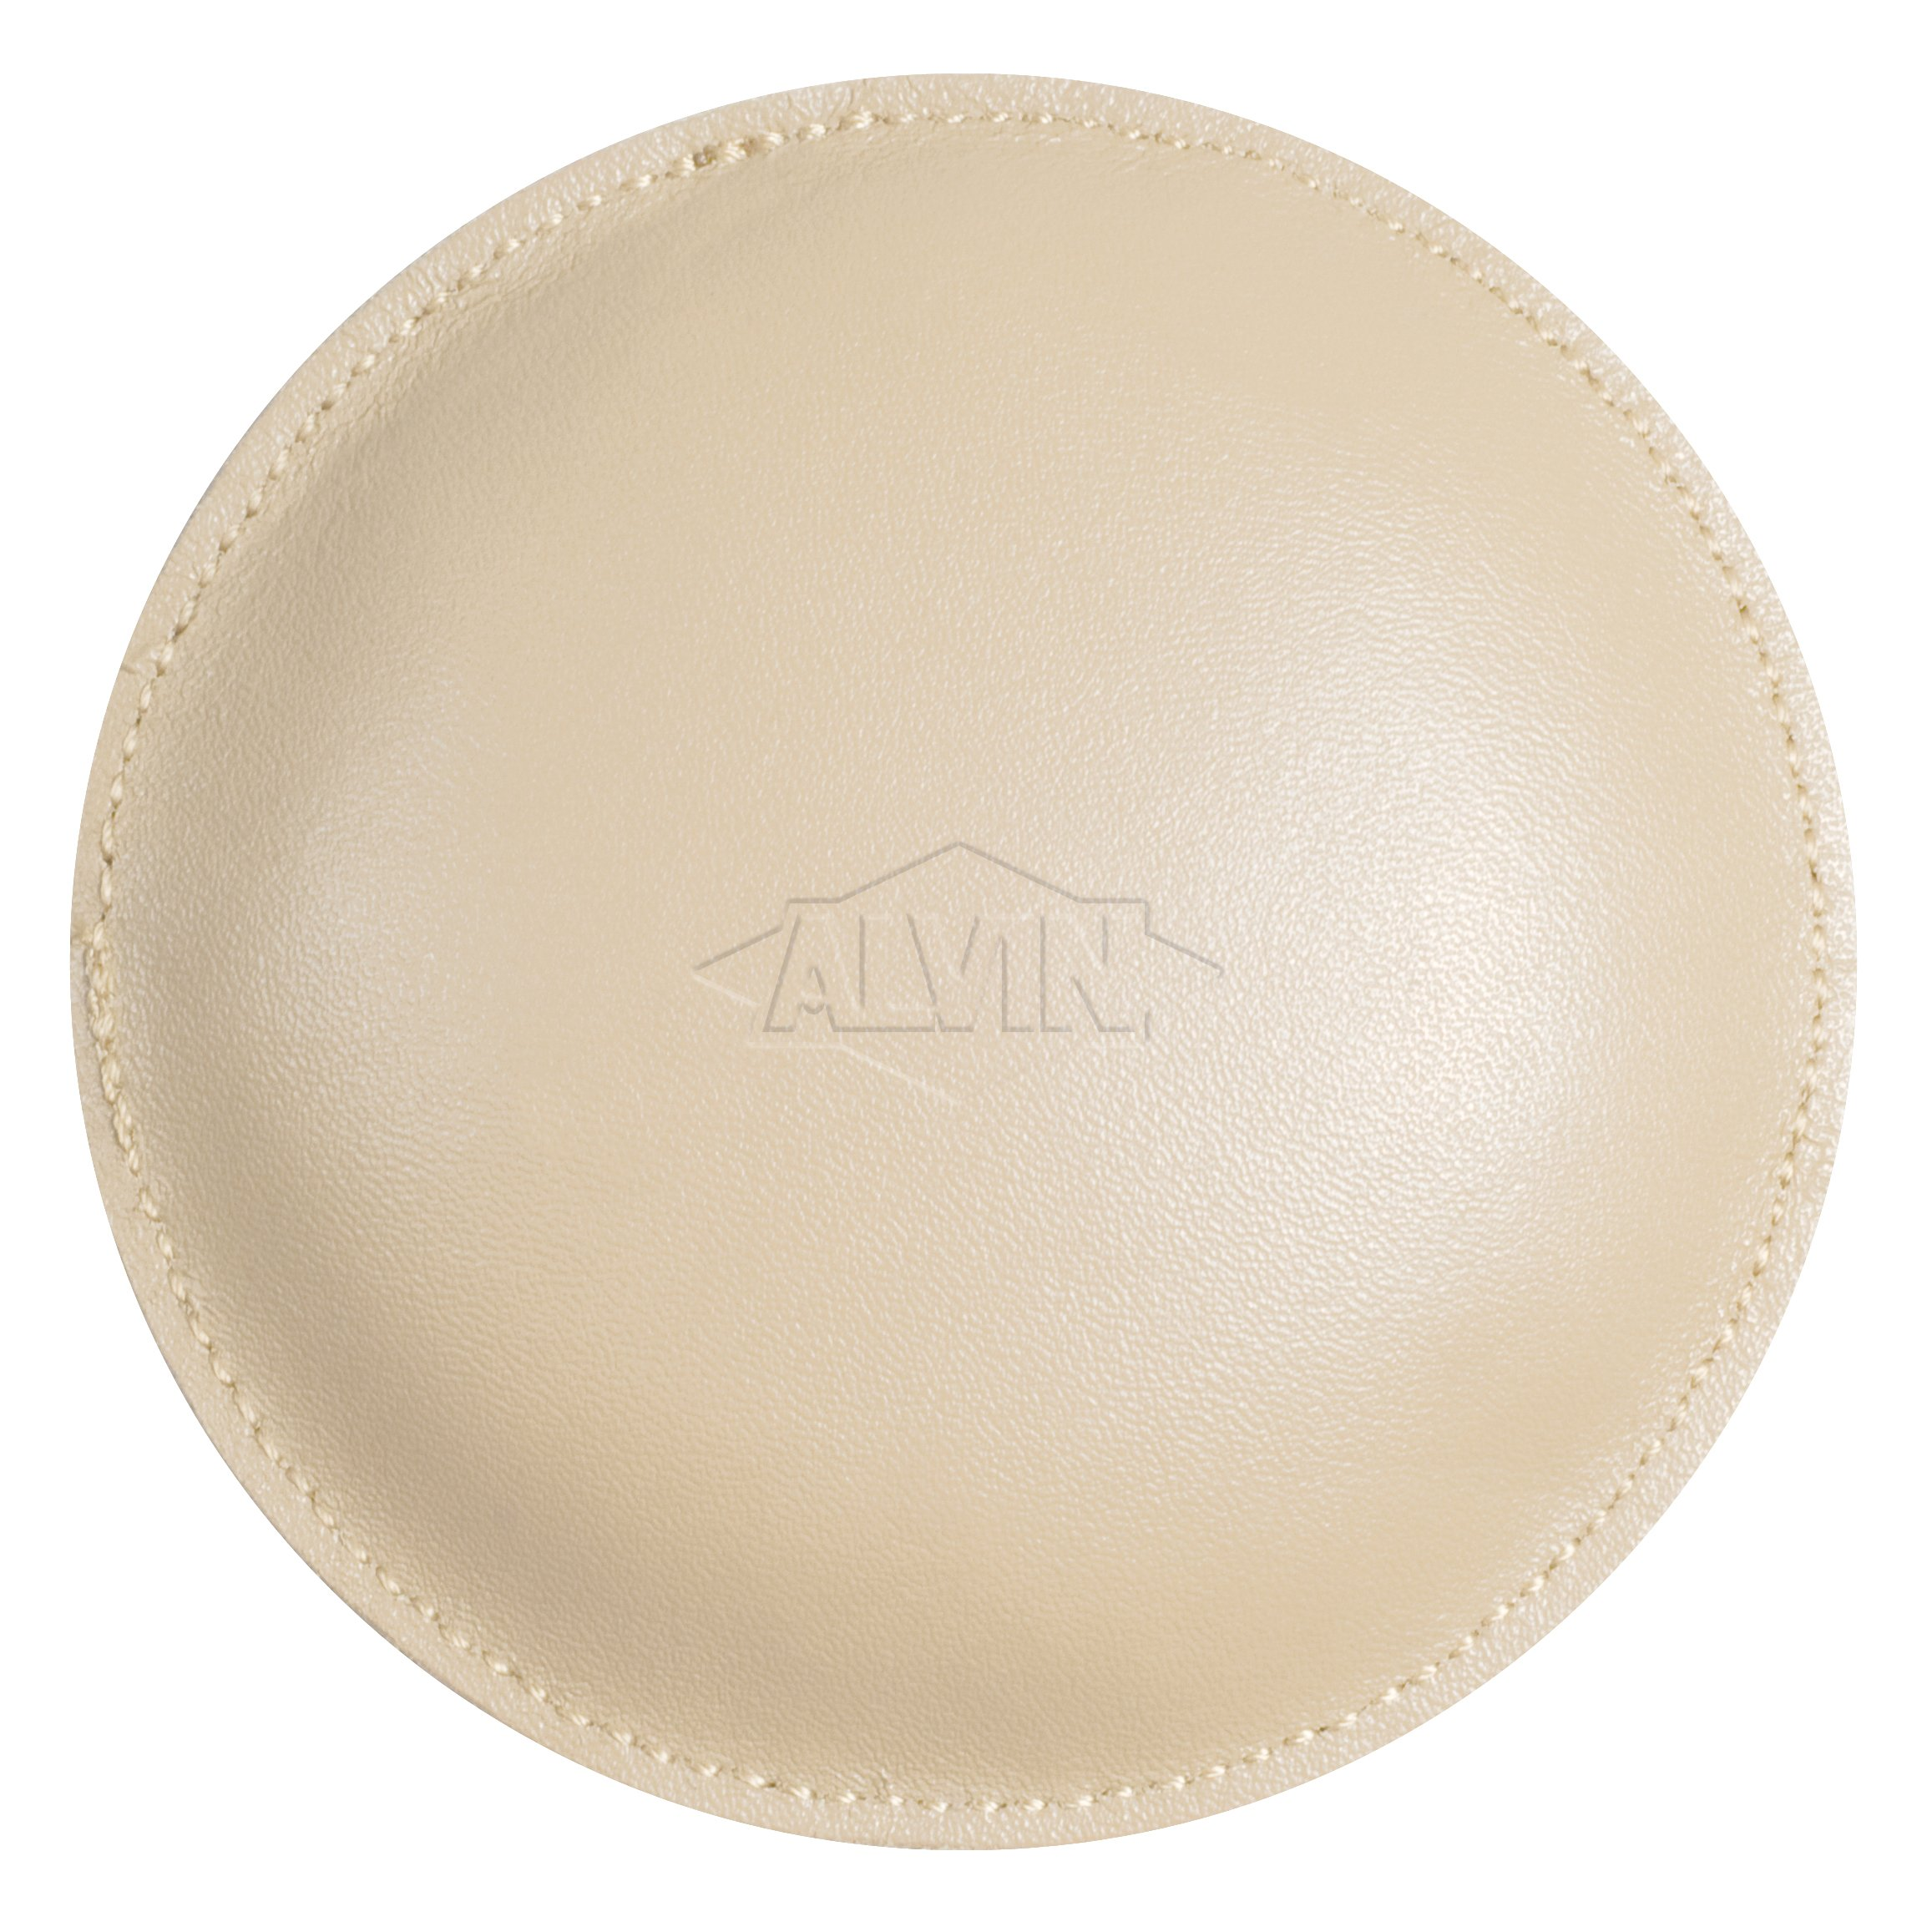 Alvin PW3 Weight Bag